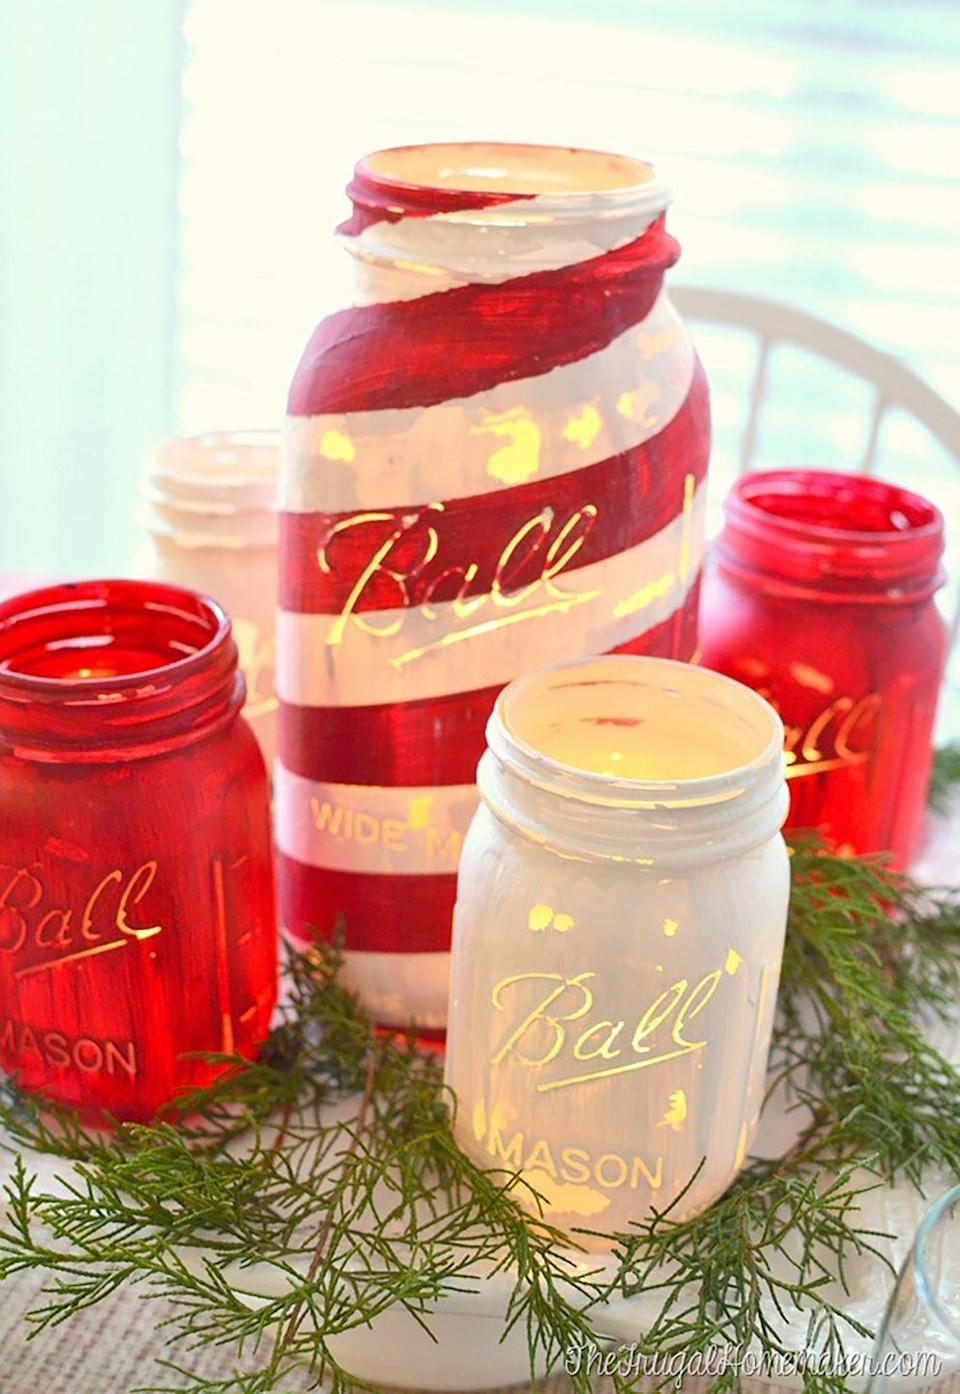 """<p>The chalky paint gives this Mason jar craft a vintage look. </p><p><strong>Get the tutorial at <a href=""""http://thefrugalhomemaker.com/2014/12/10/chalky-painted-mason-jars-and-christmas-tablescape-americana-decor-chalky-finish-paint-giveaway/"""" rel=""""nofollow noopener"""" target=""""_blank"""" data-ylk=""""slk:The Frugal Homemaker"""" class=""""link rapid-noclick-resp"""">The Frugal Homemaker</a>. </strong></p><p><a class=""""link rapid-noclick-resp"""" href=""""https://www.amazon.com/FolkArt-Pl34150-Decor-Adirondack-Multicolor/dp/B00JRR21FY/?tag=syn-yahoo-20&ascsubtag=%5Bartid%7C10050.g.2132%5Bsrc%7Cyahoo-us"""" rel=""""nofollow noopener"""" target=""""_blank"""" data-ylk=""""slk:SHOP CHALK PAINT"""">SHOP CHALK PAINT</a></p>"""